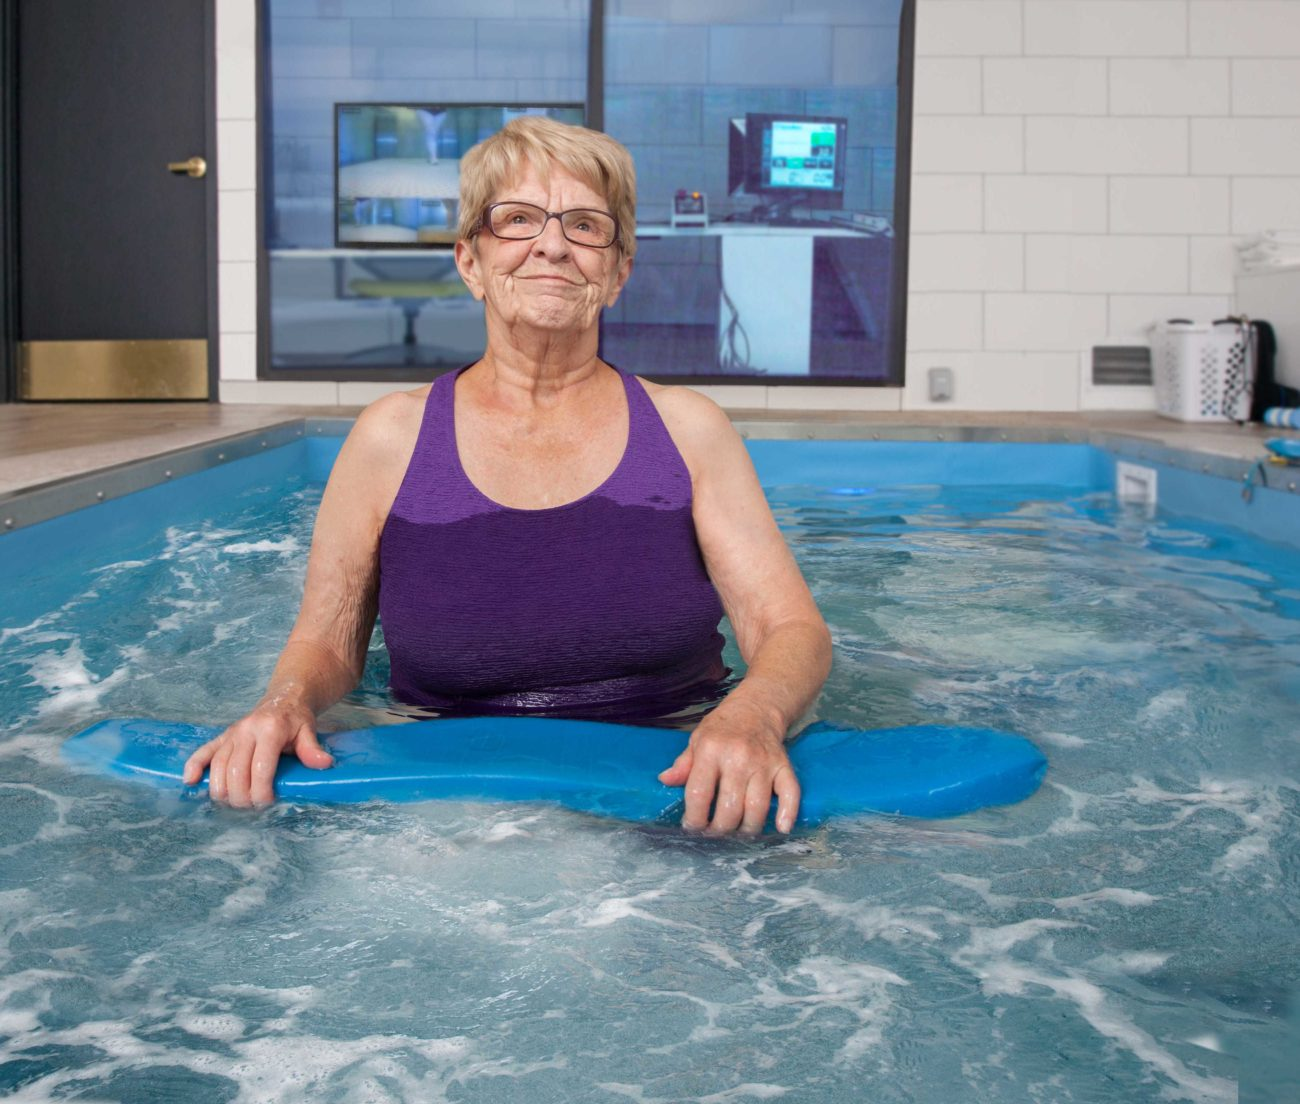 a woman stands in the hydropool for a therapy session.